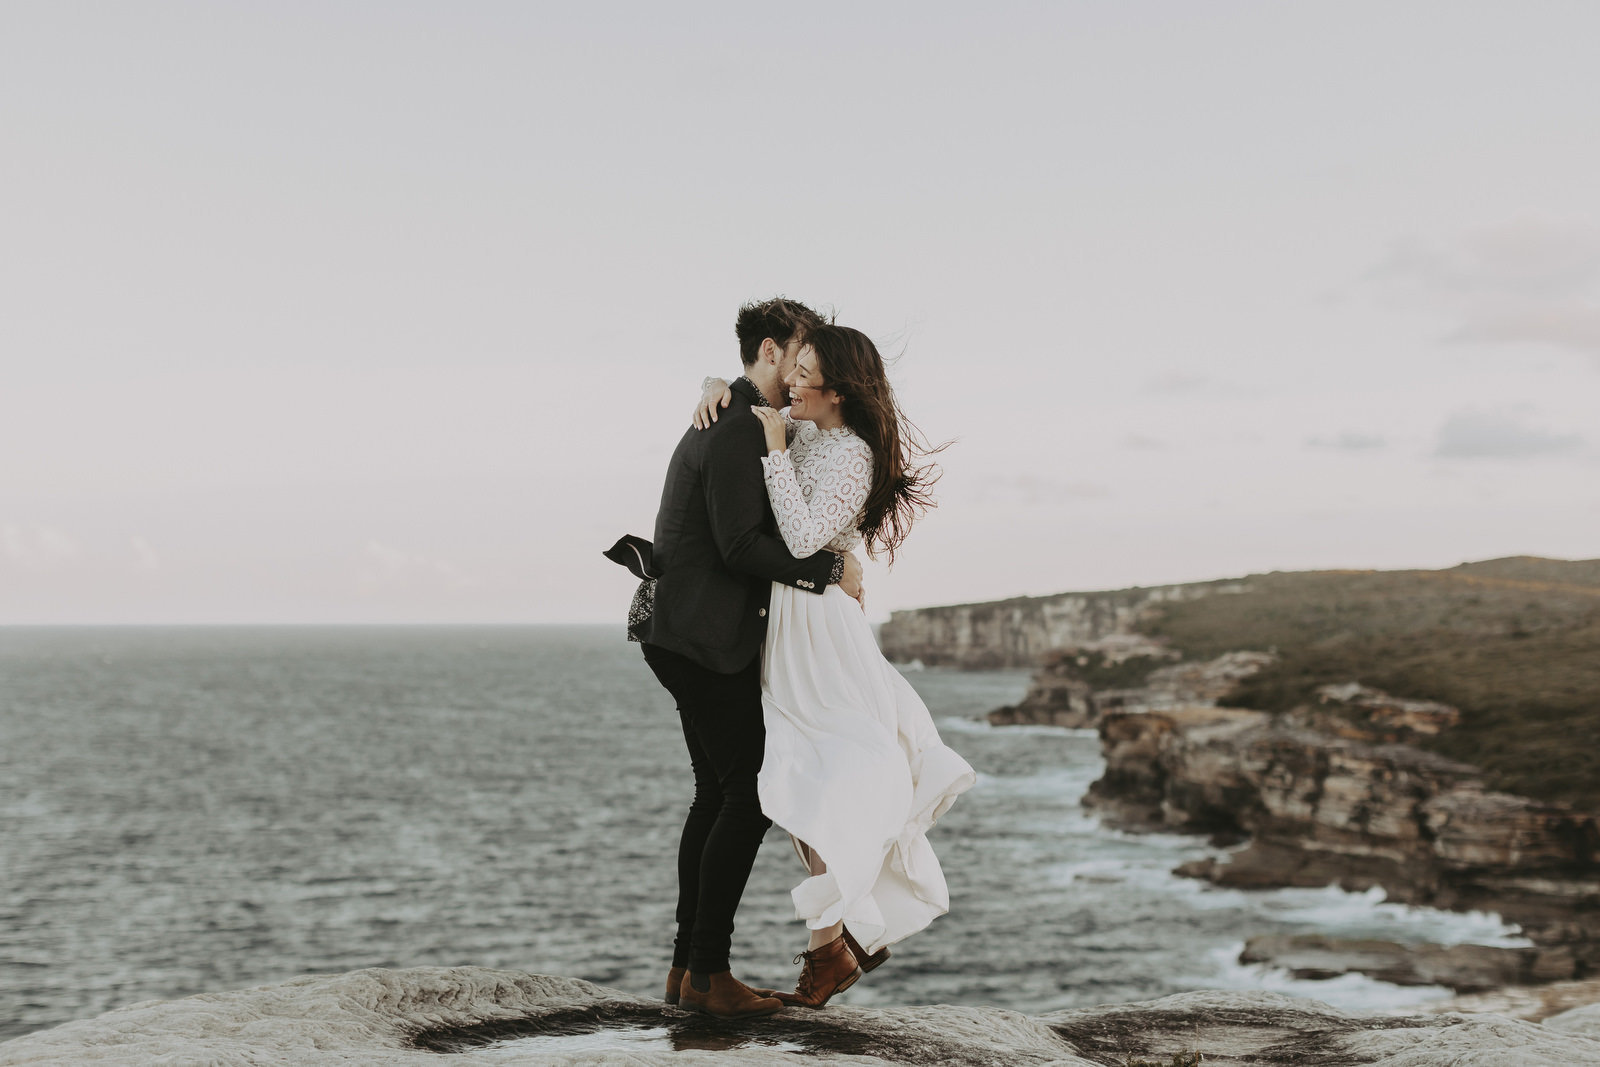 athena-and-camron-sydney-wedding-boho-romance-james-simmons-photography-christian-couple-goals102